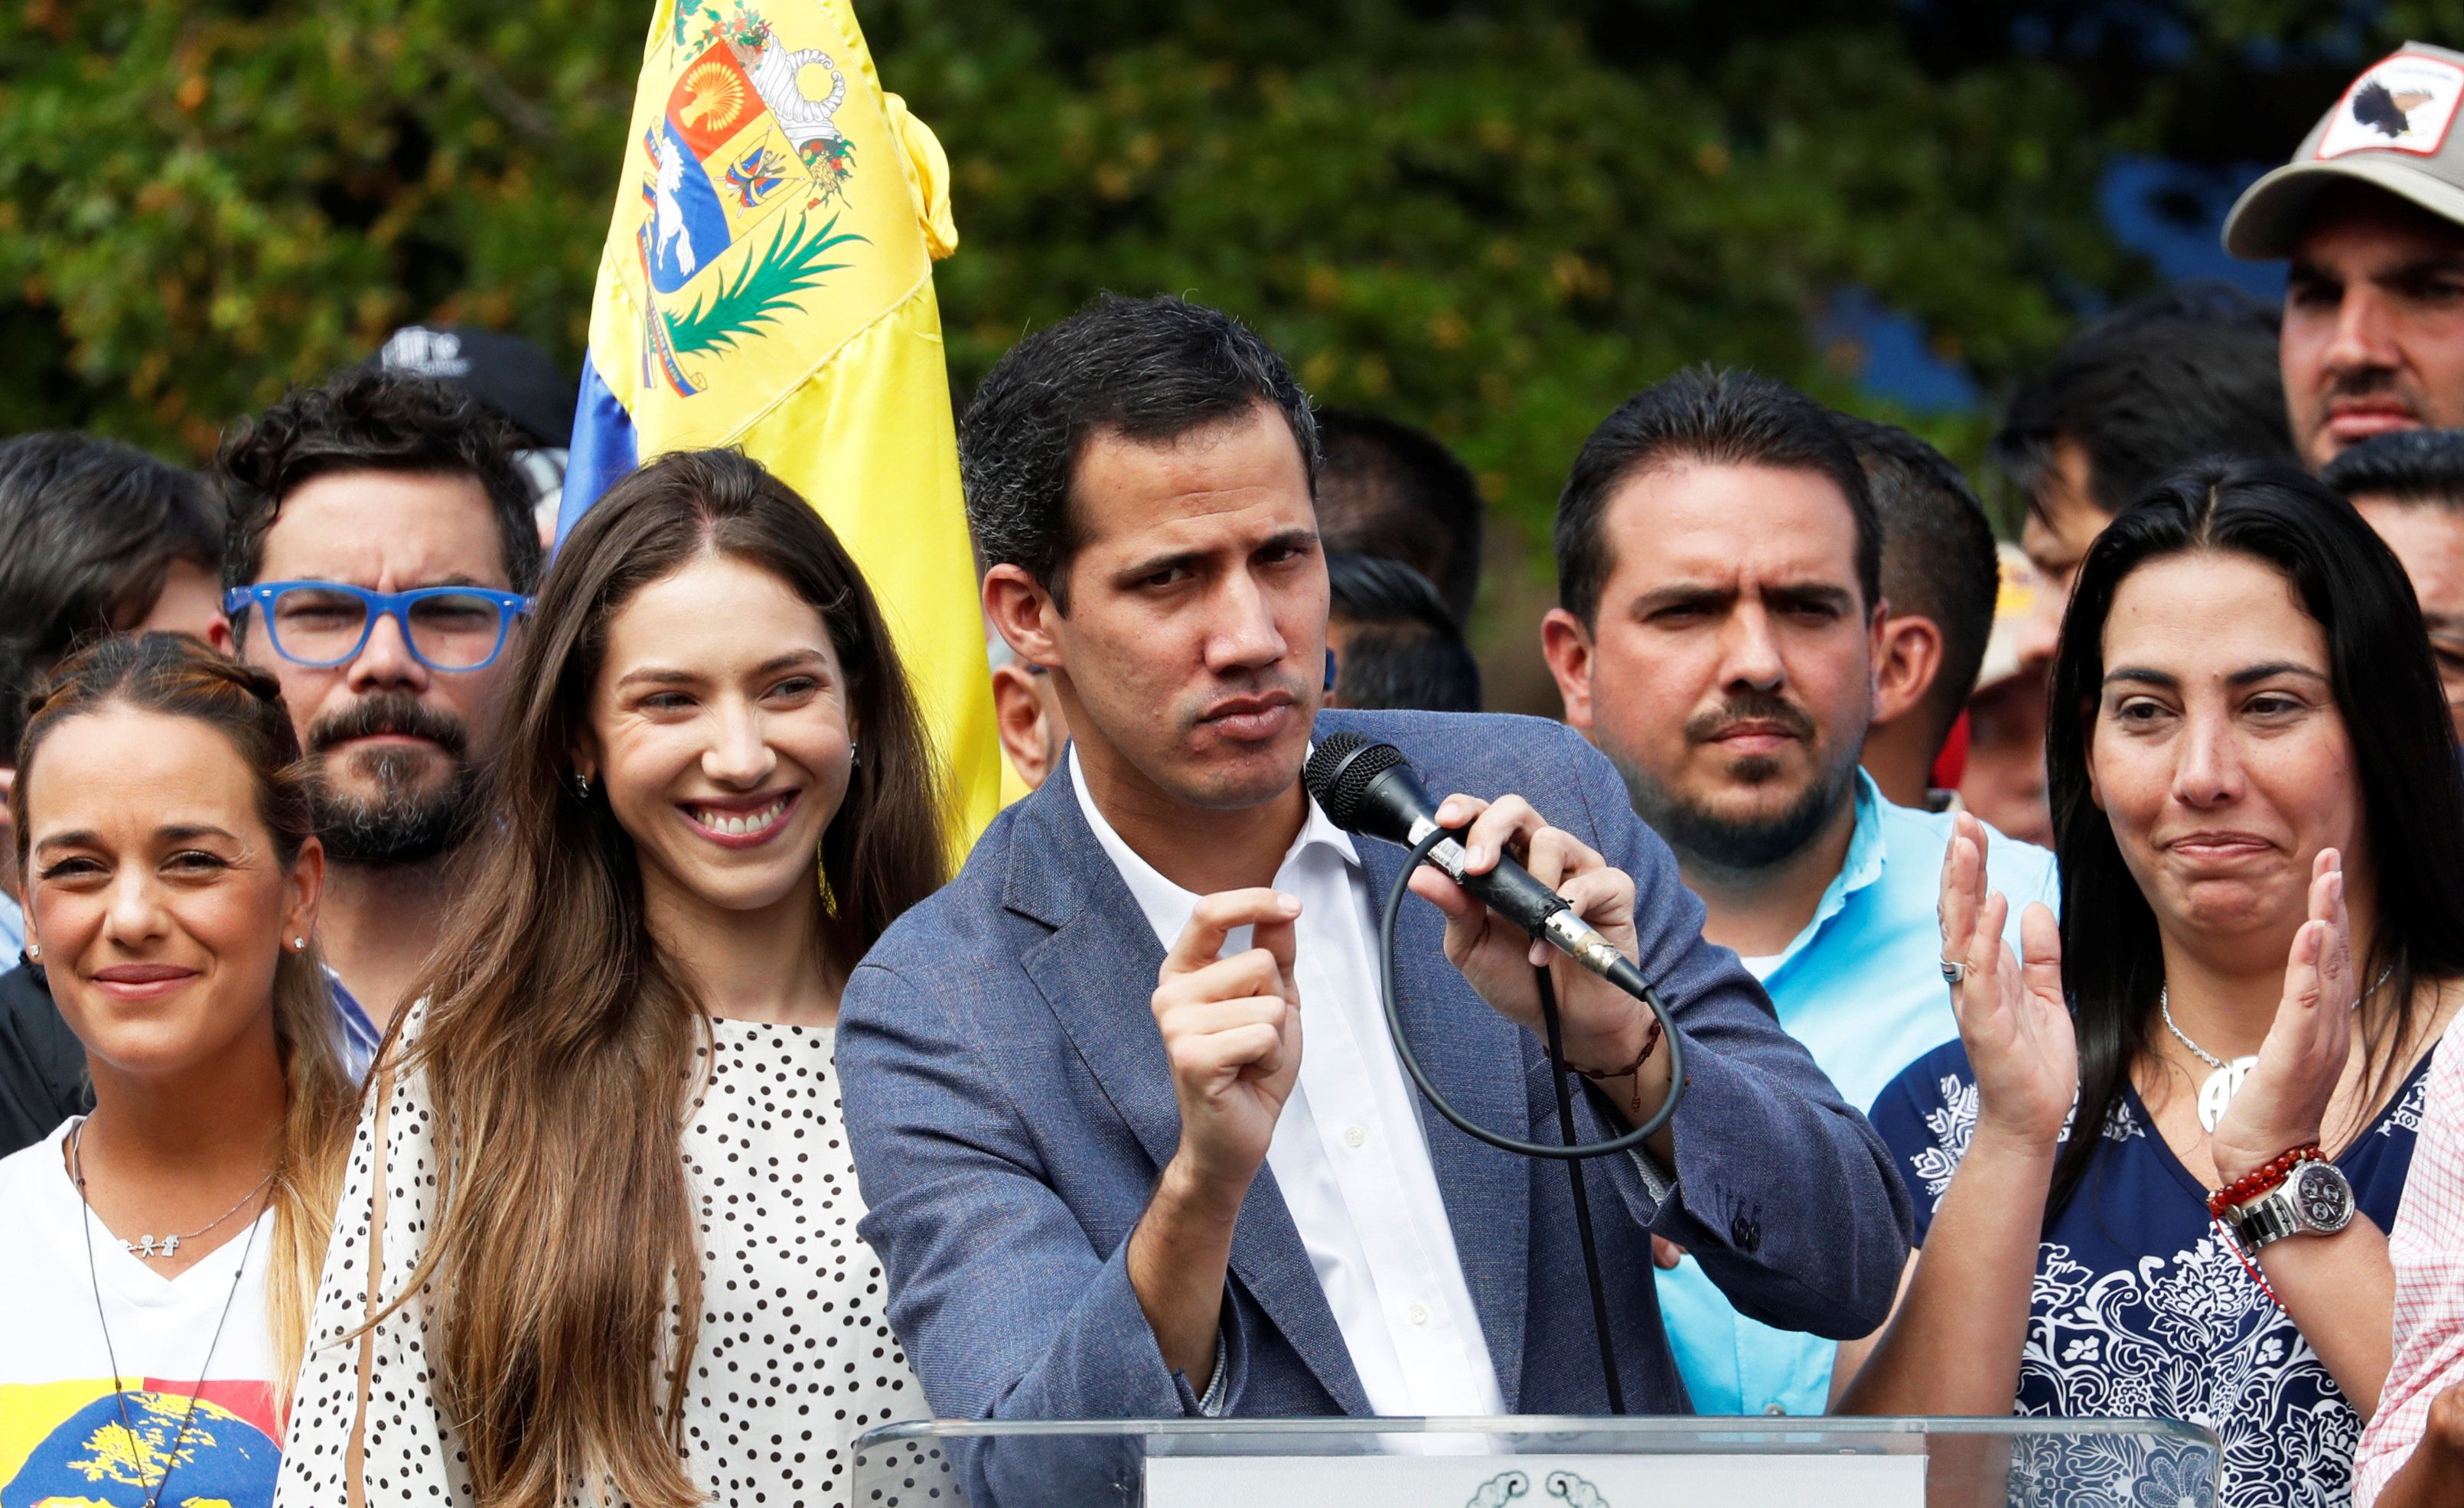 Venezuela's opposition leader Juan Guaido speaks during a rally with members of the Venezuela's National Assembly regarding an amnesty law project for members of the military, in Caracas, Venezuela, January 26, 2019. REUTERS/Carlos Garcia Rawlins